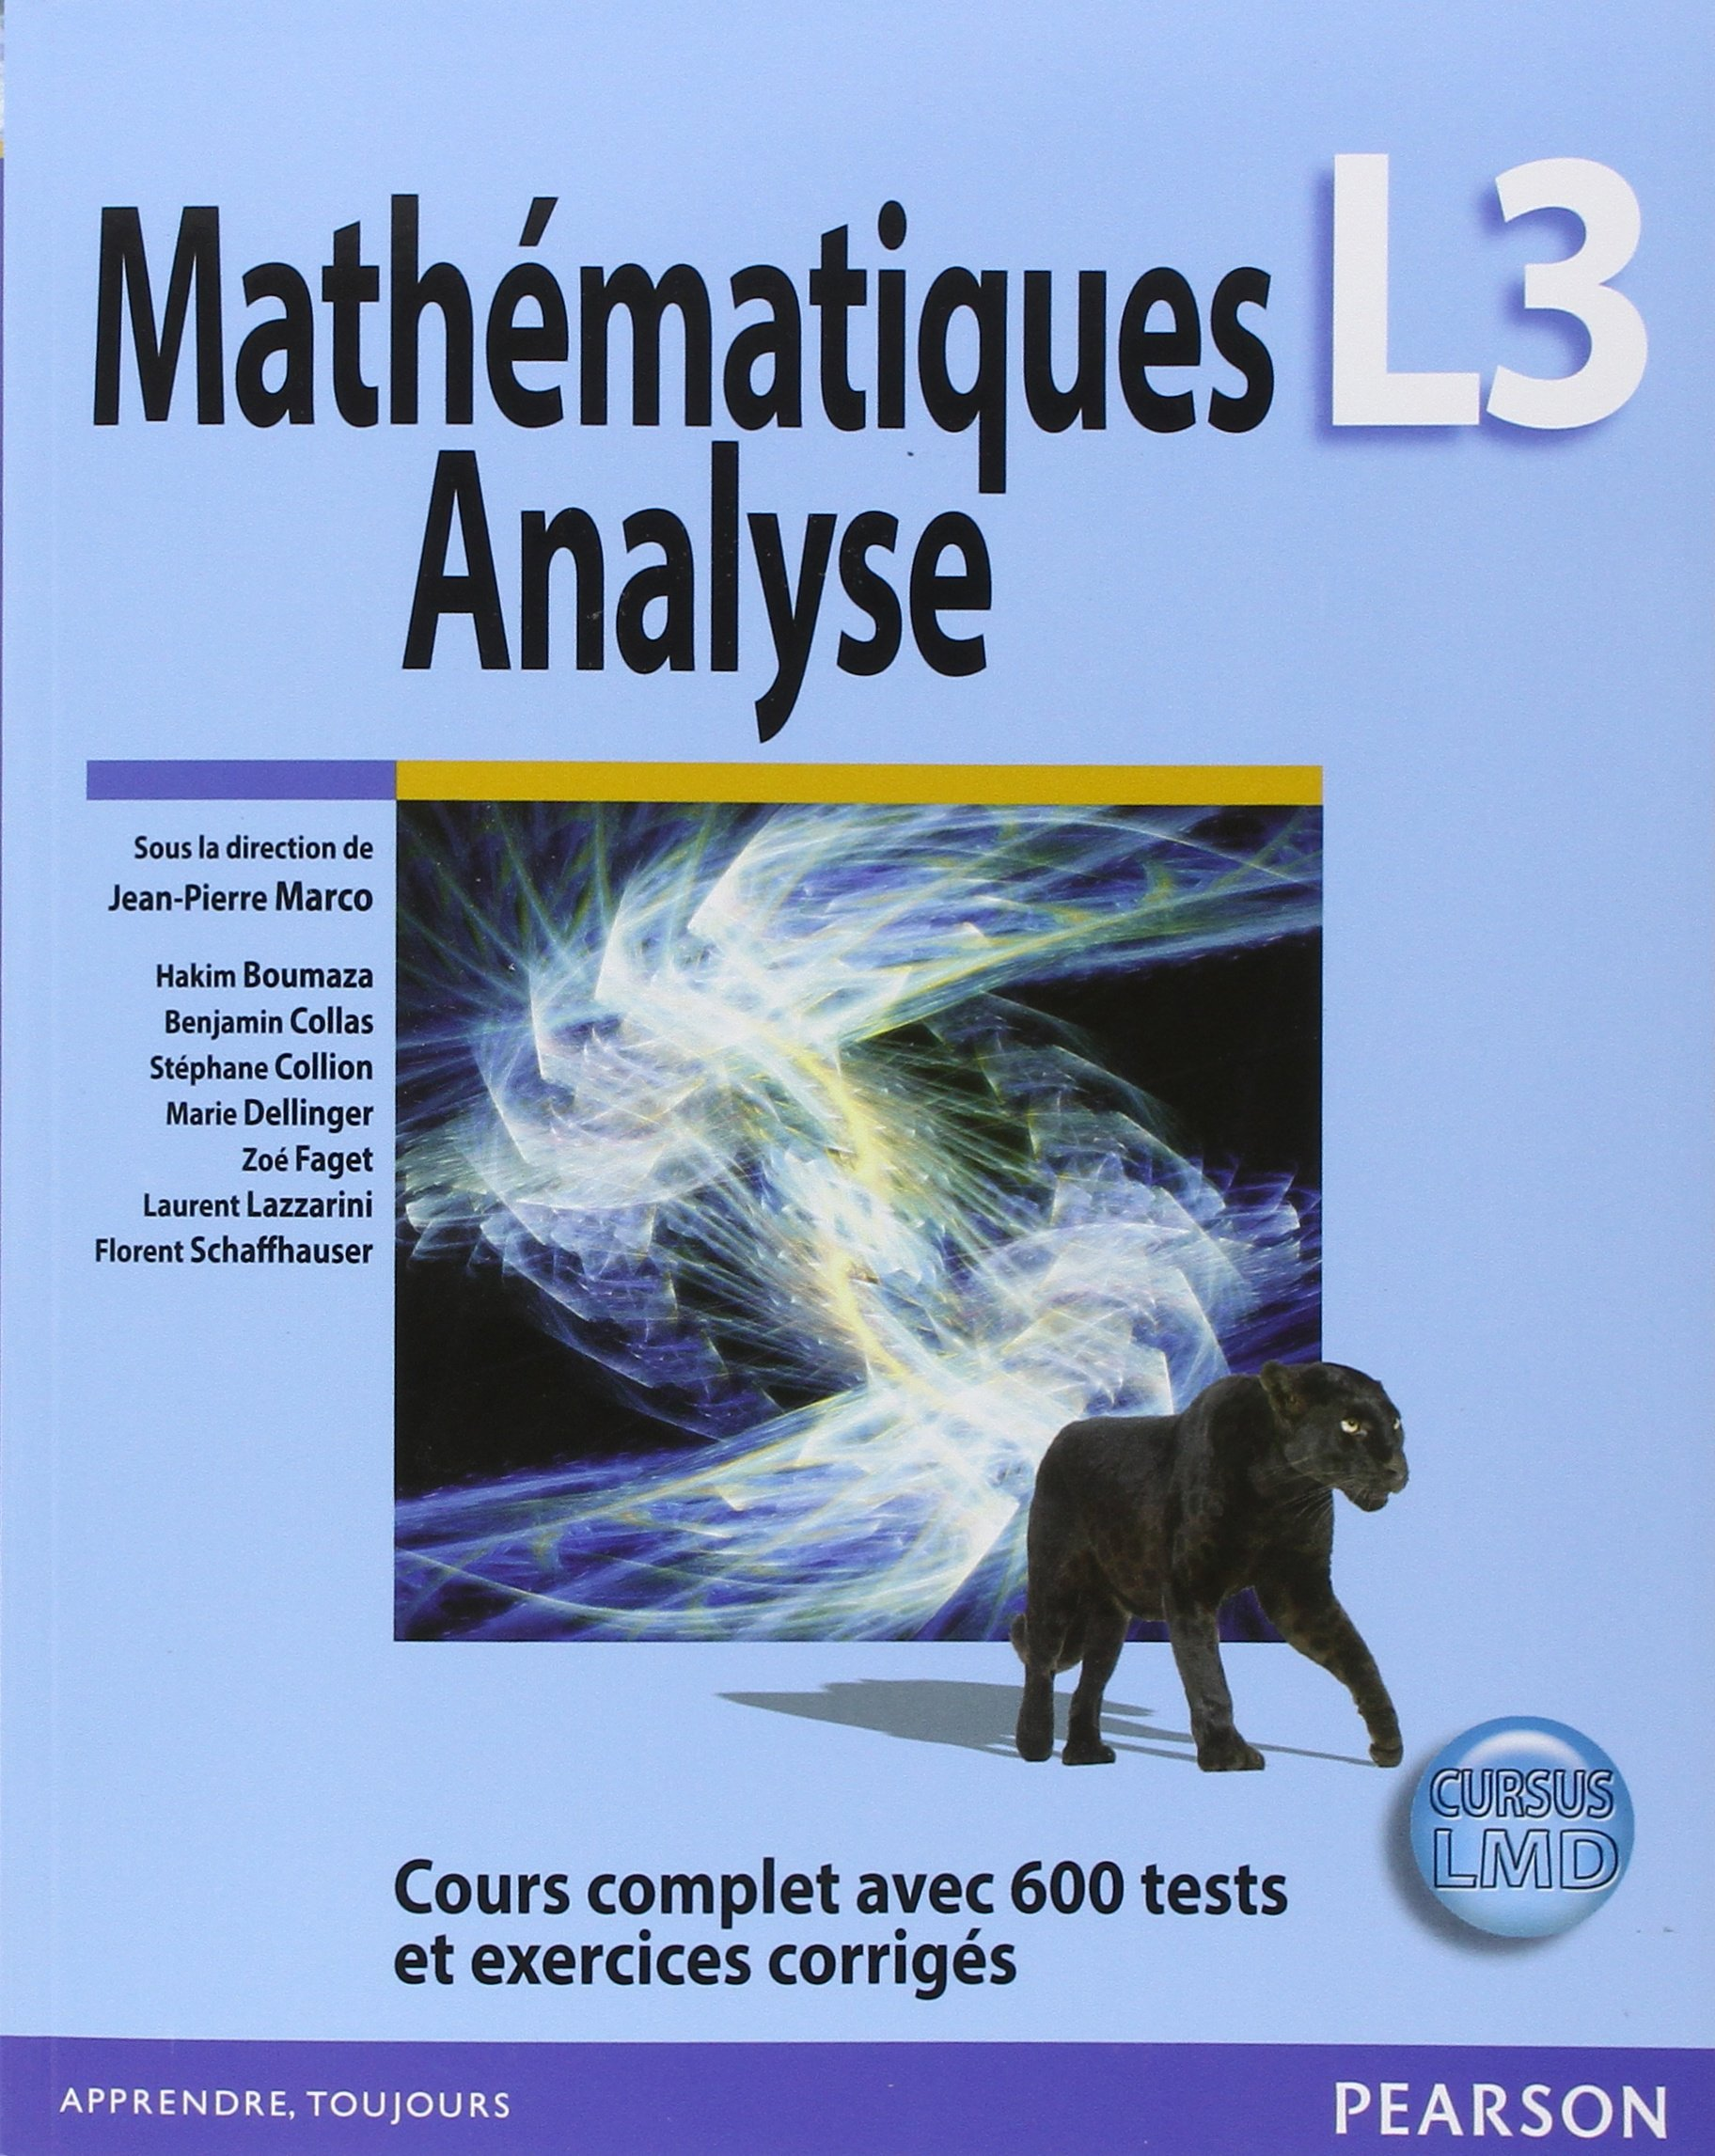 Amazon Fr Mathematiques L3 Analyse Cours Complet Avec 600 Tests Et Exercices Corriges Hakim Boumaza Stephane Collion Marie Dellinger Zoe Faget Laurent Lazzarini Florent Schaffhauser Benjamin Collas Jean Pierre Marco Livres